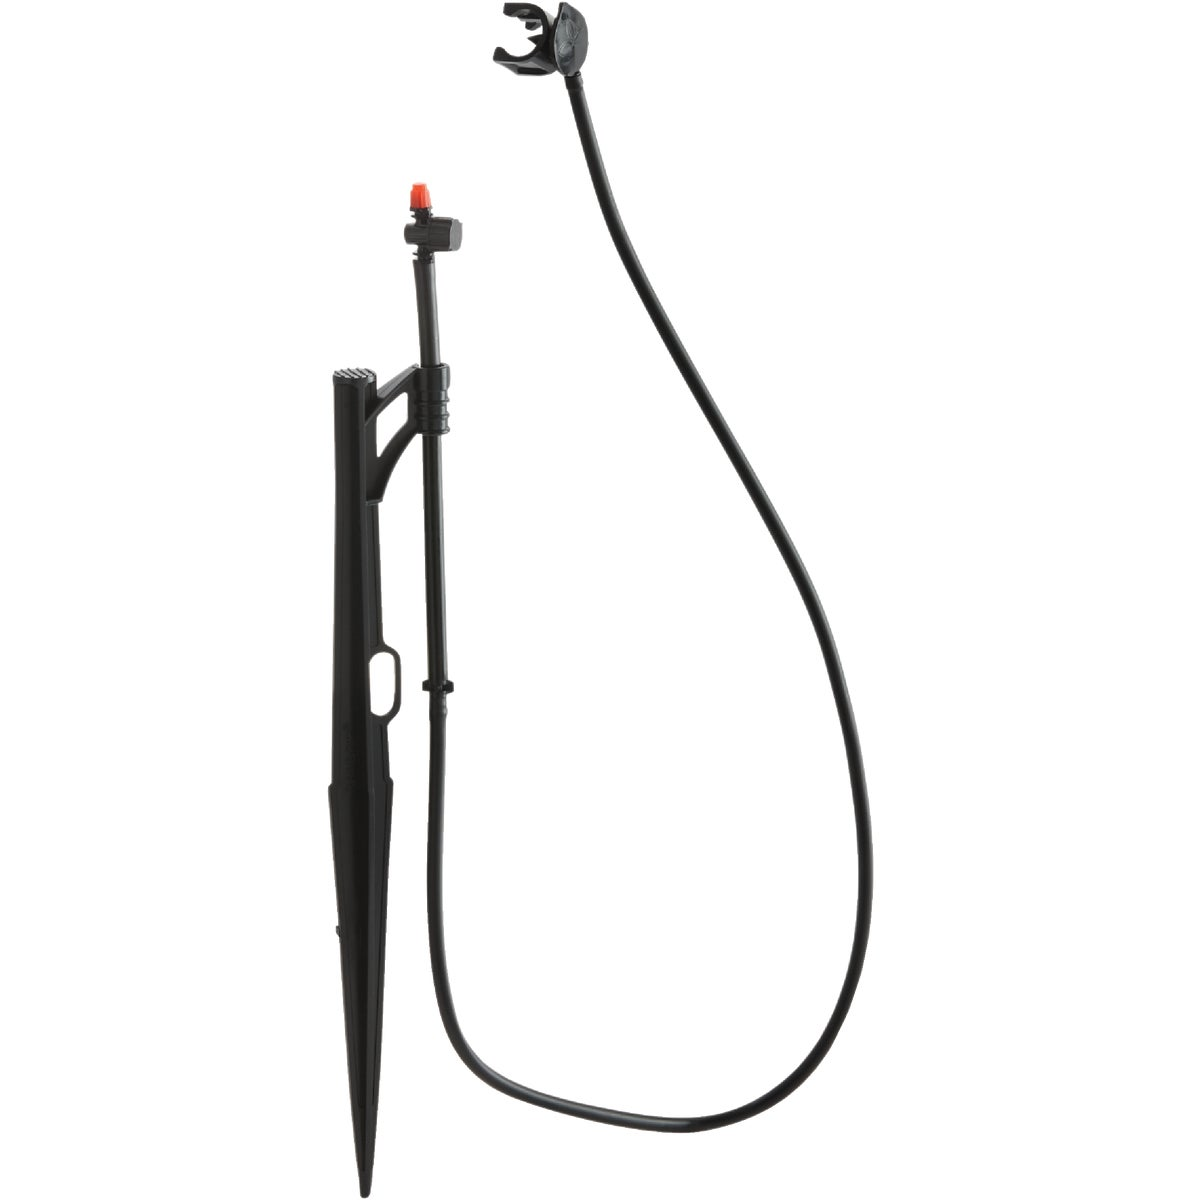 "13"" FUL CIR ADJ SPRAYER - 170CPUB by Raindrip Inc"